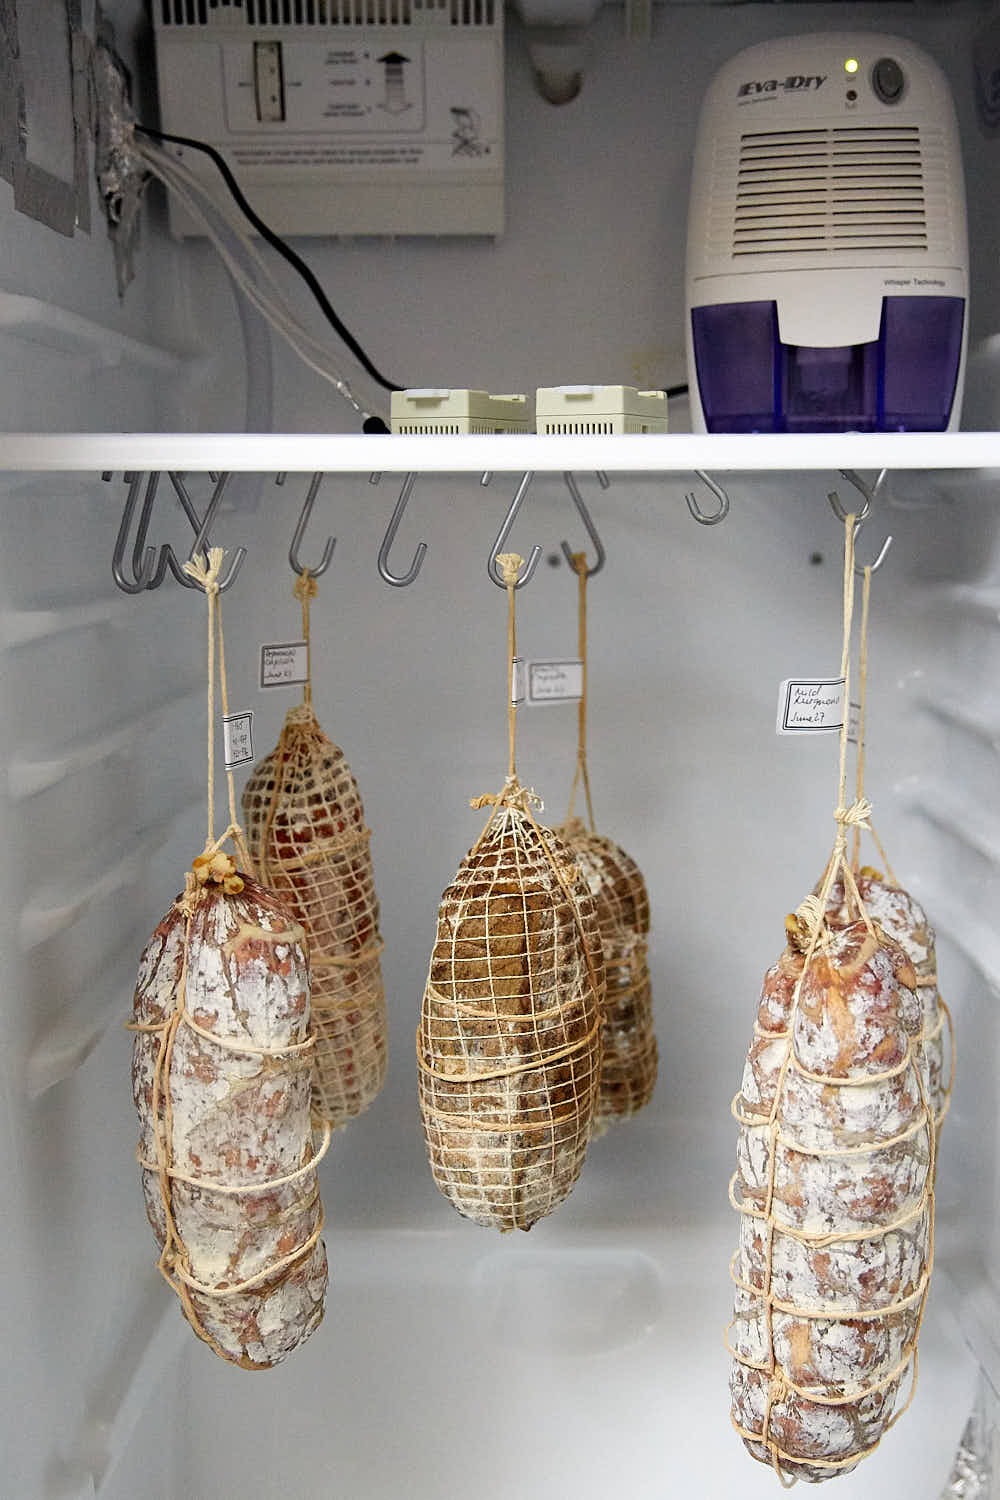 Meats hanging inside a curing chamber.